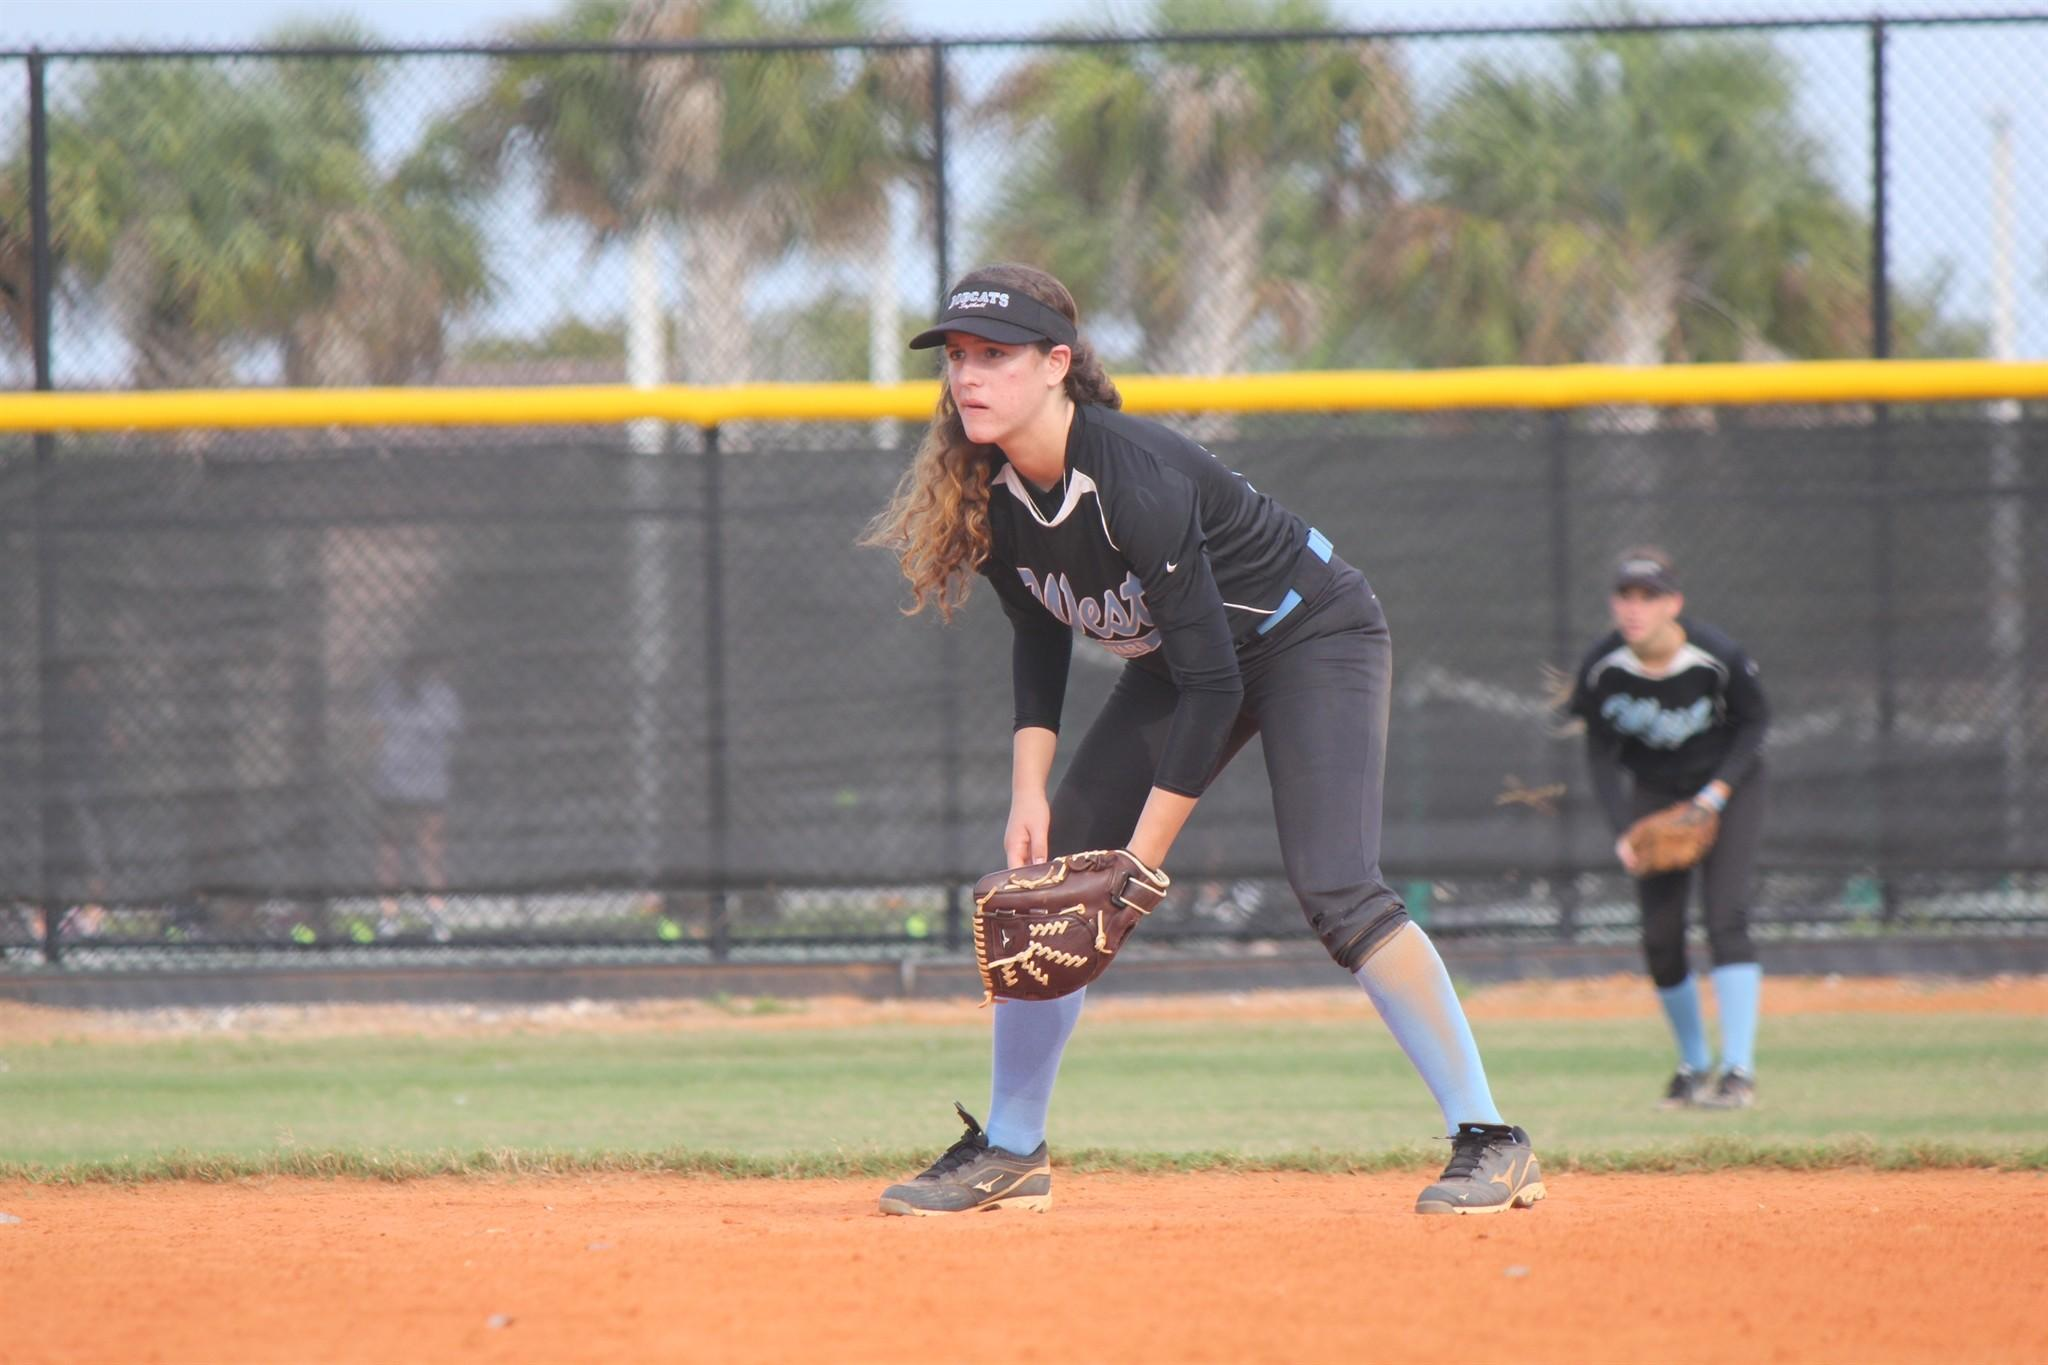 West Broward junior Megan Obier has committed to play softball at 23rd-ranked USC-Upstate. (Handout)